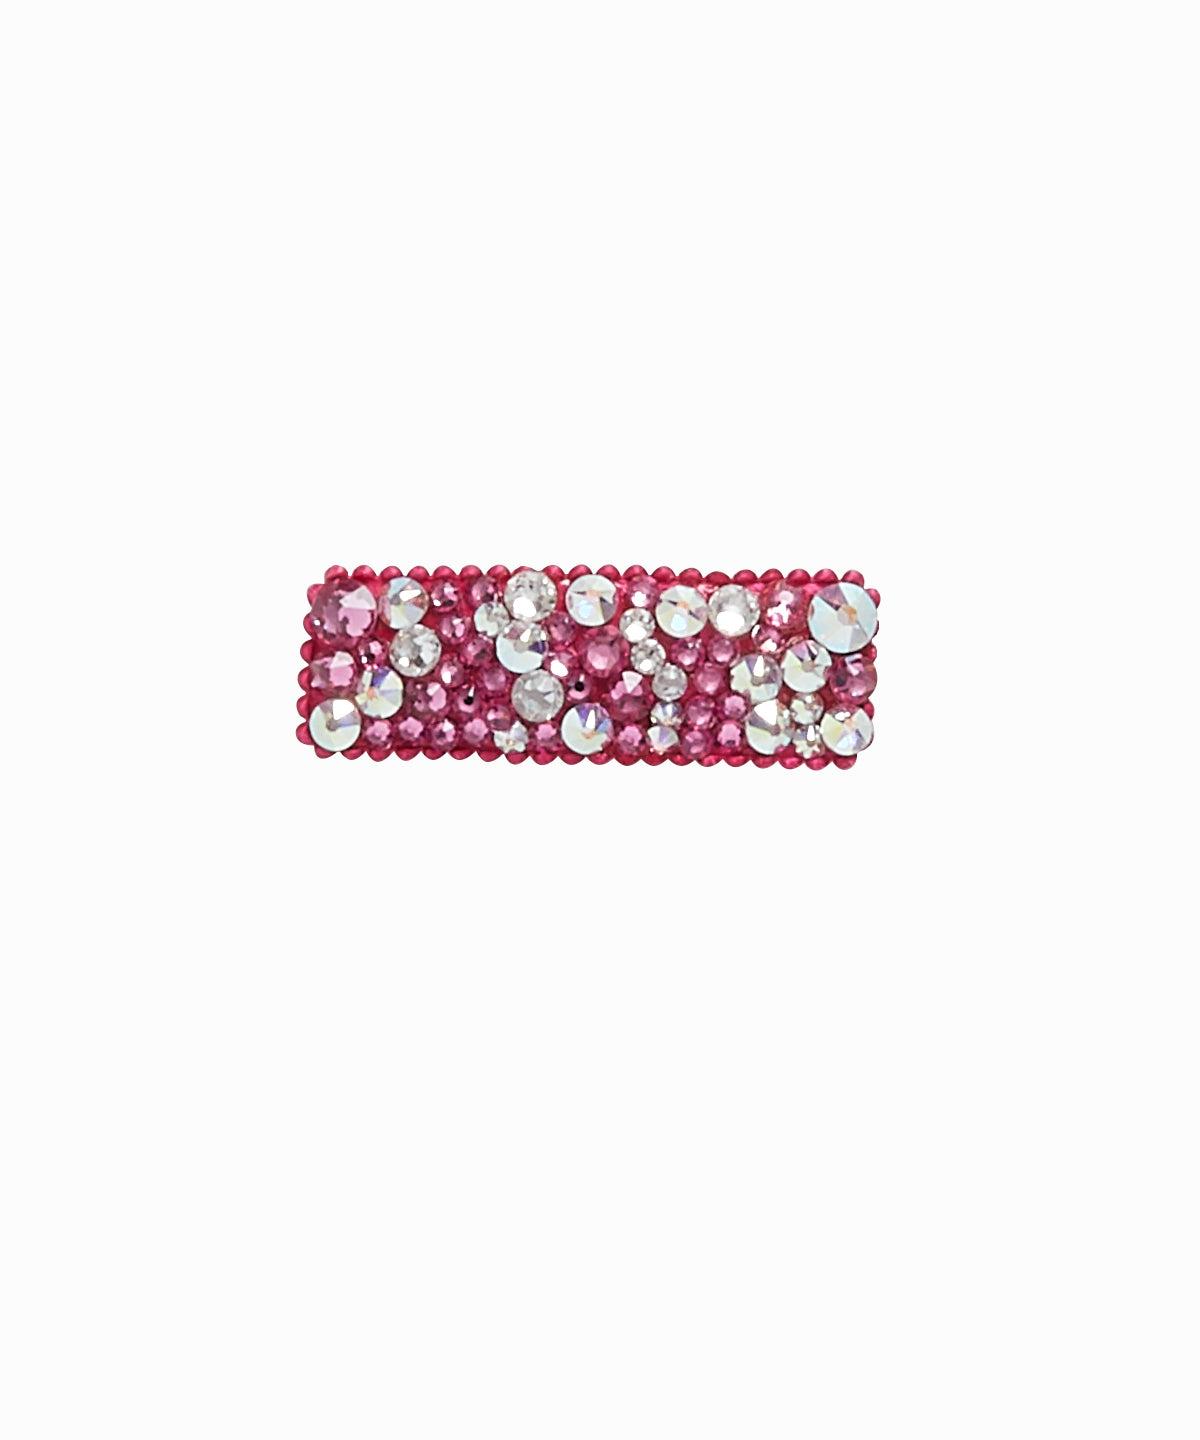 Pink and Silver Rhinestone Hair Clip